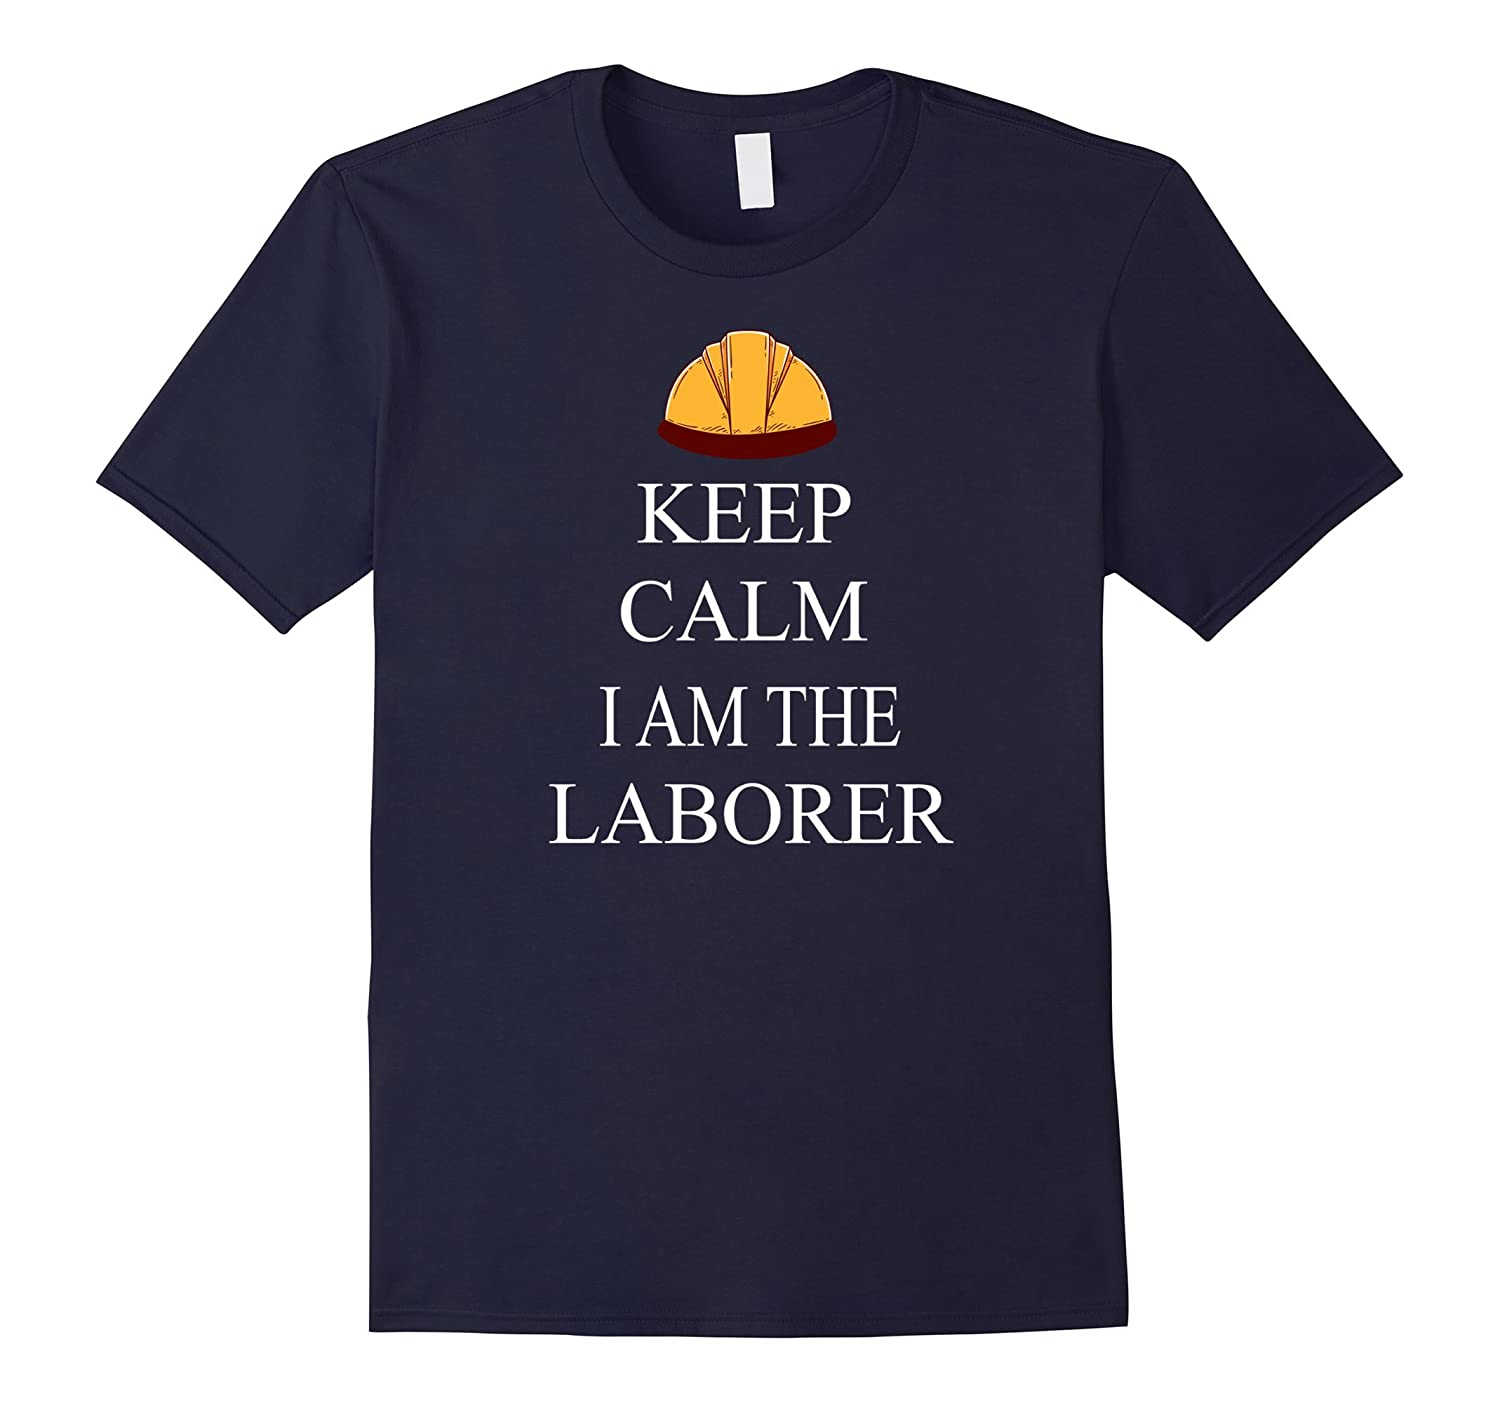 Keep Calm I Am The Laborer Shirt - Labor Day Funny T Shirt-BN